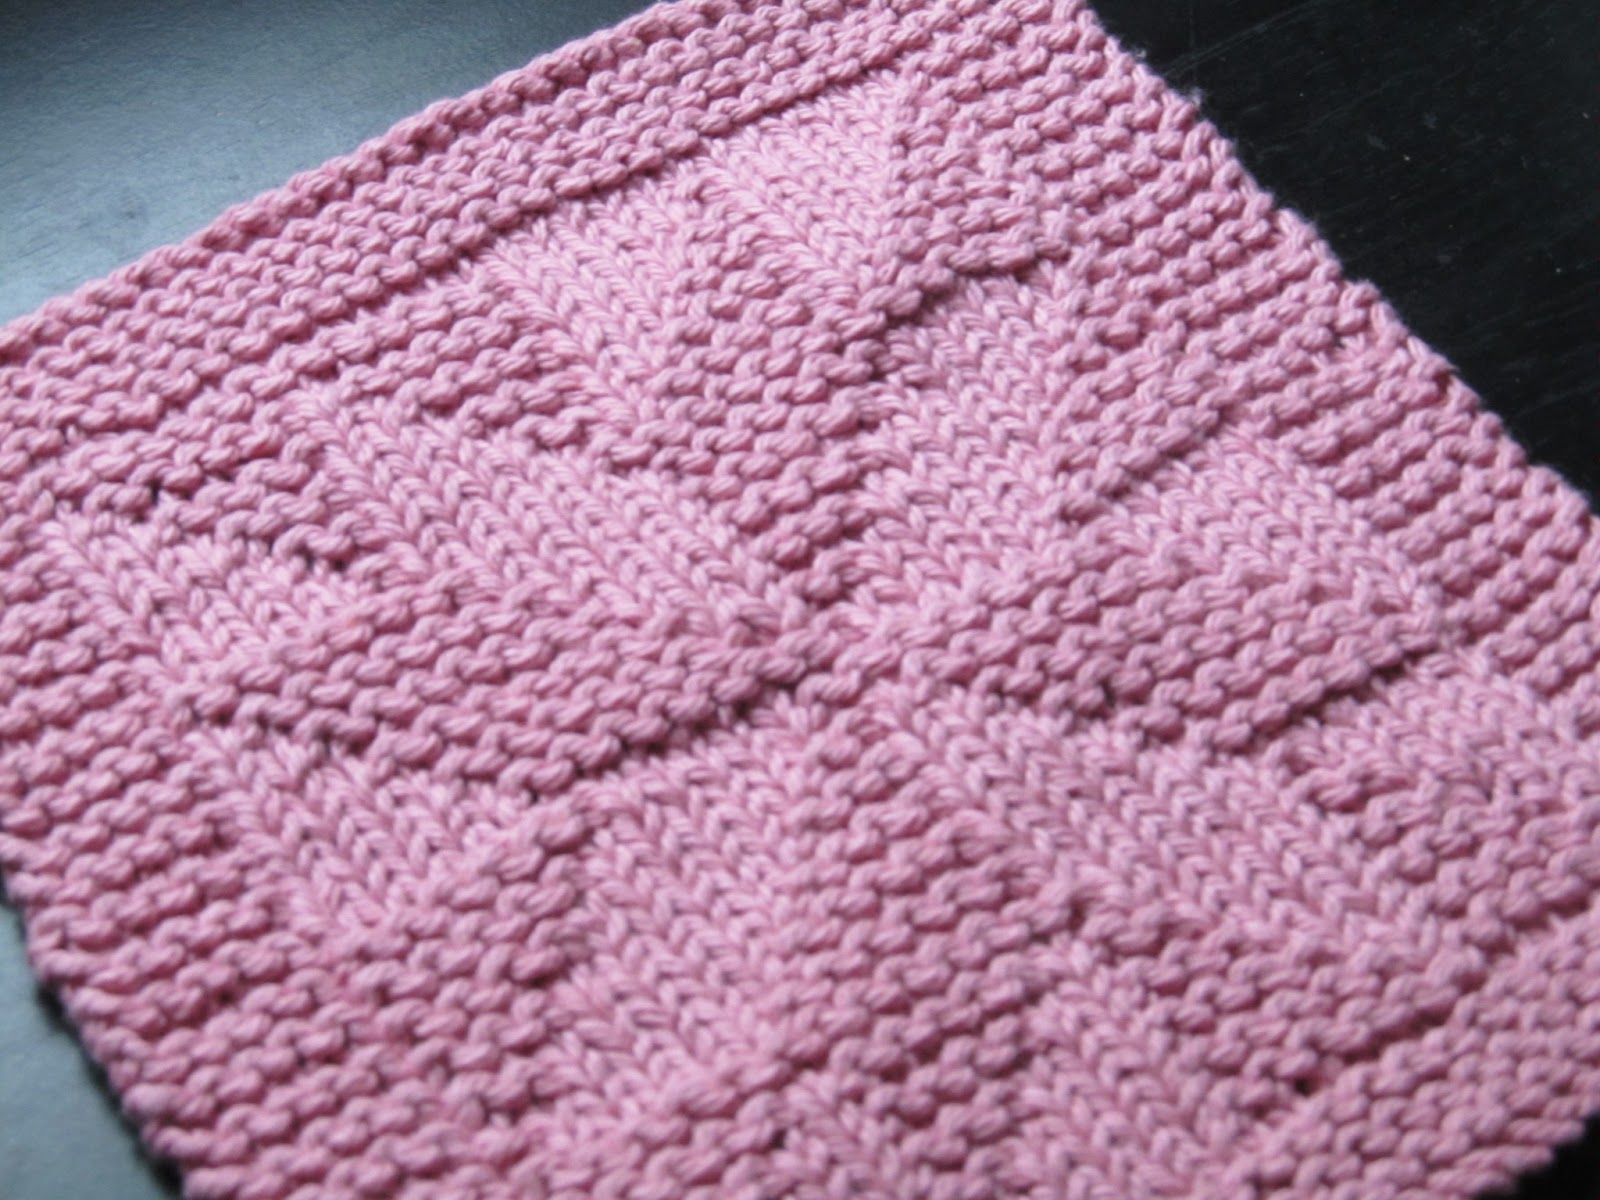 dishcloth knitting patterns with pictures | Free dishcloth pattern ...